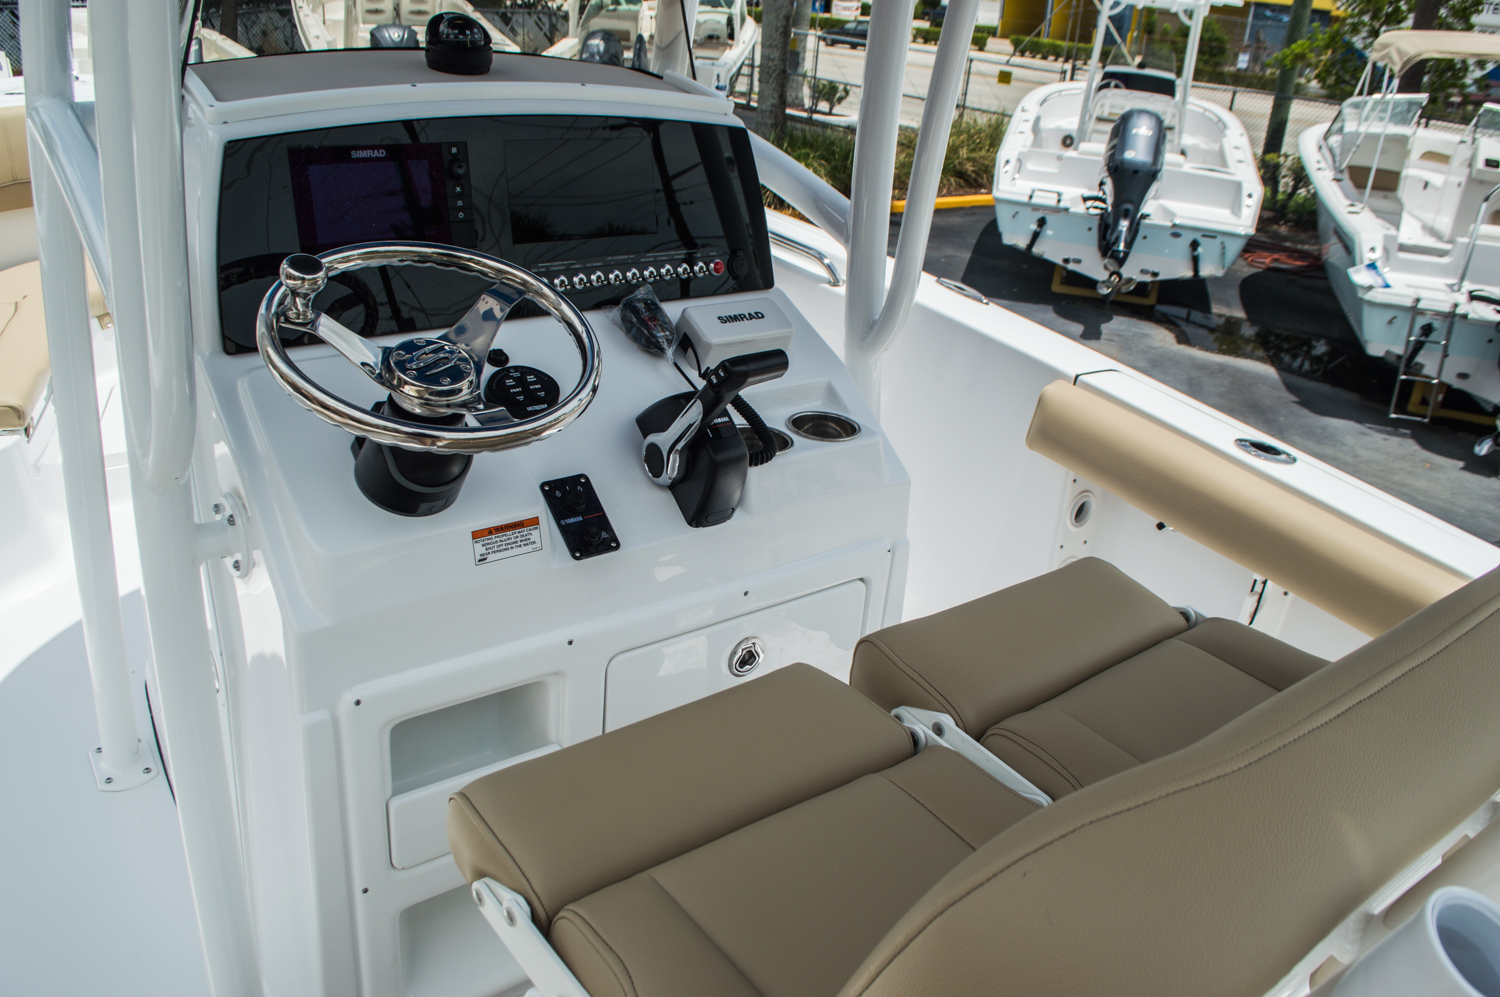 Thumbnail 24 for New 2016 Sportsman Heritage 231 Center Console boat for sale in West Palm Beach, FL